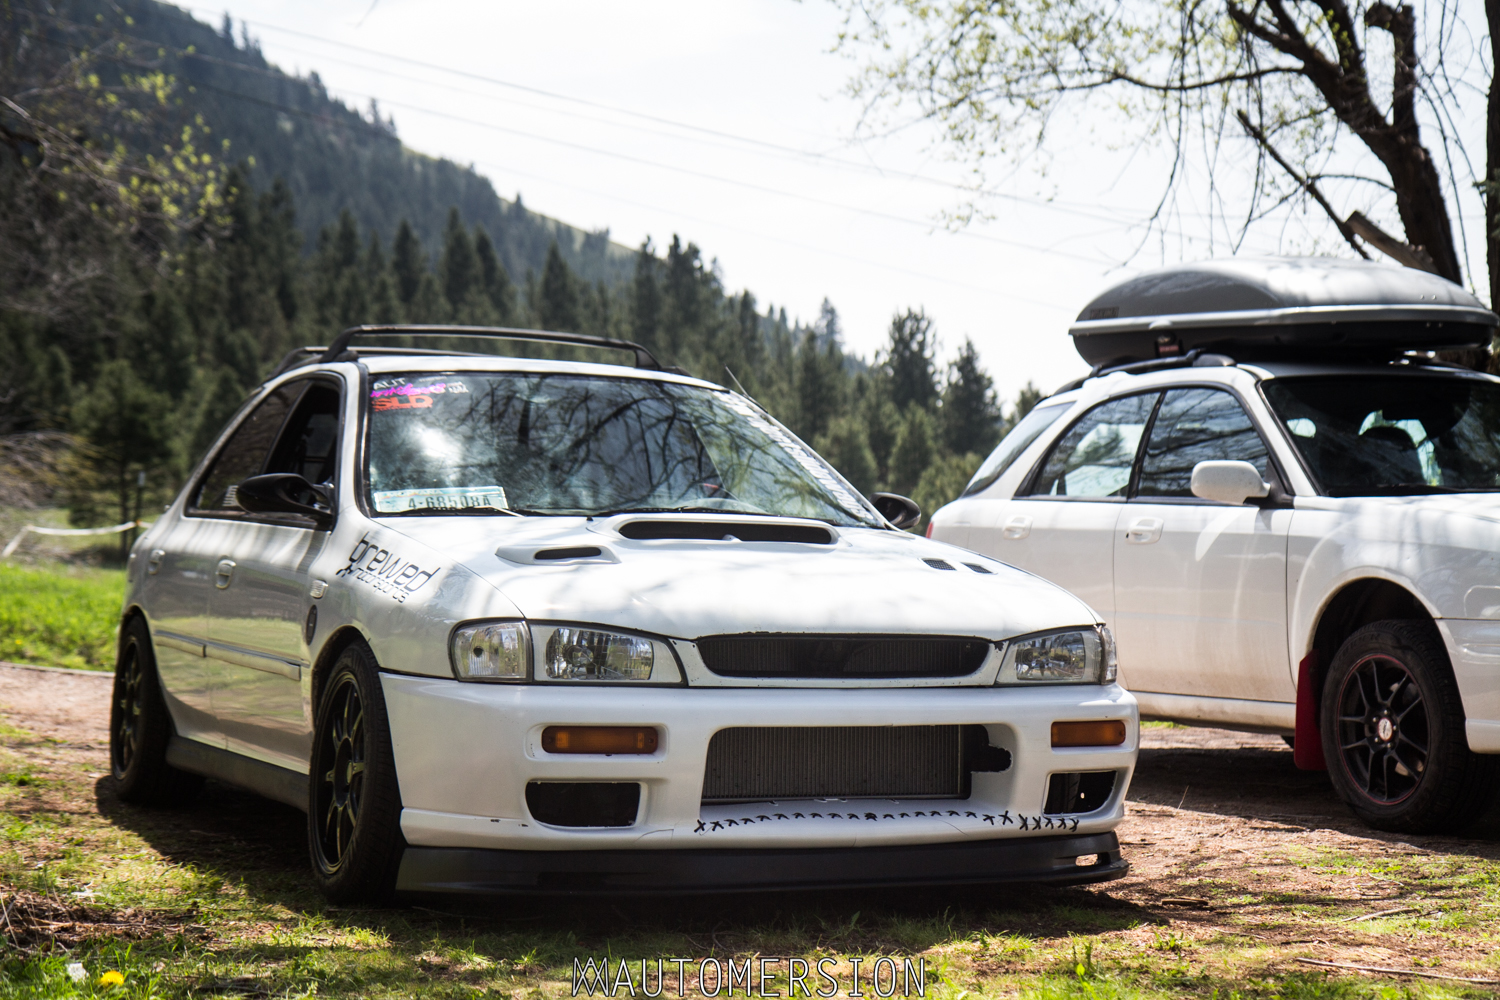 How To Fit A Honda Front Lip On A Subaru Automersion